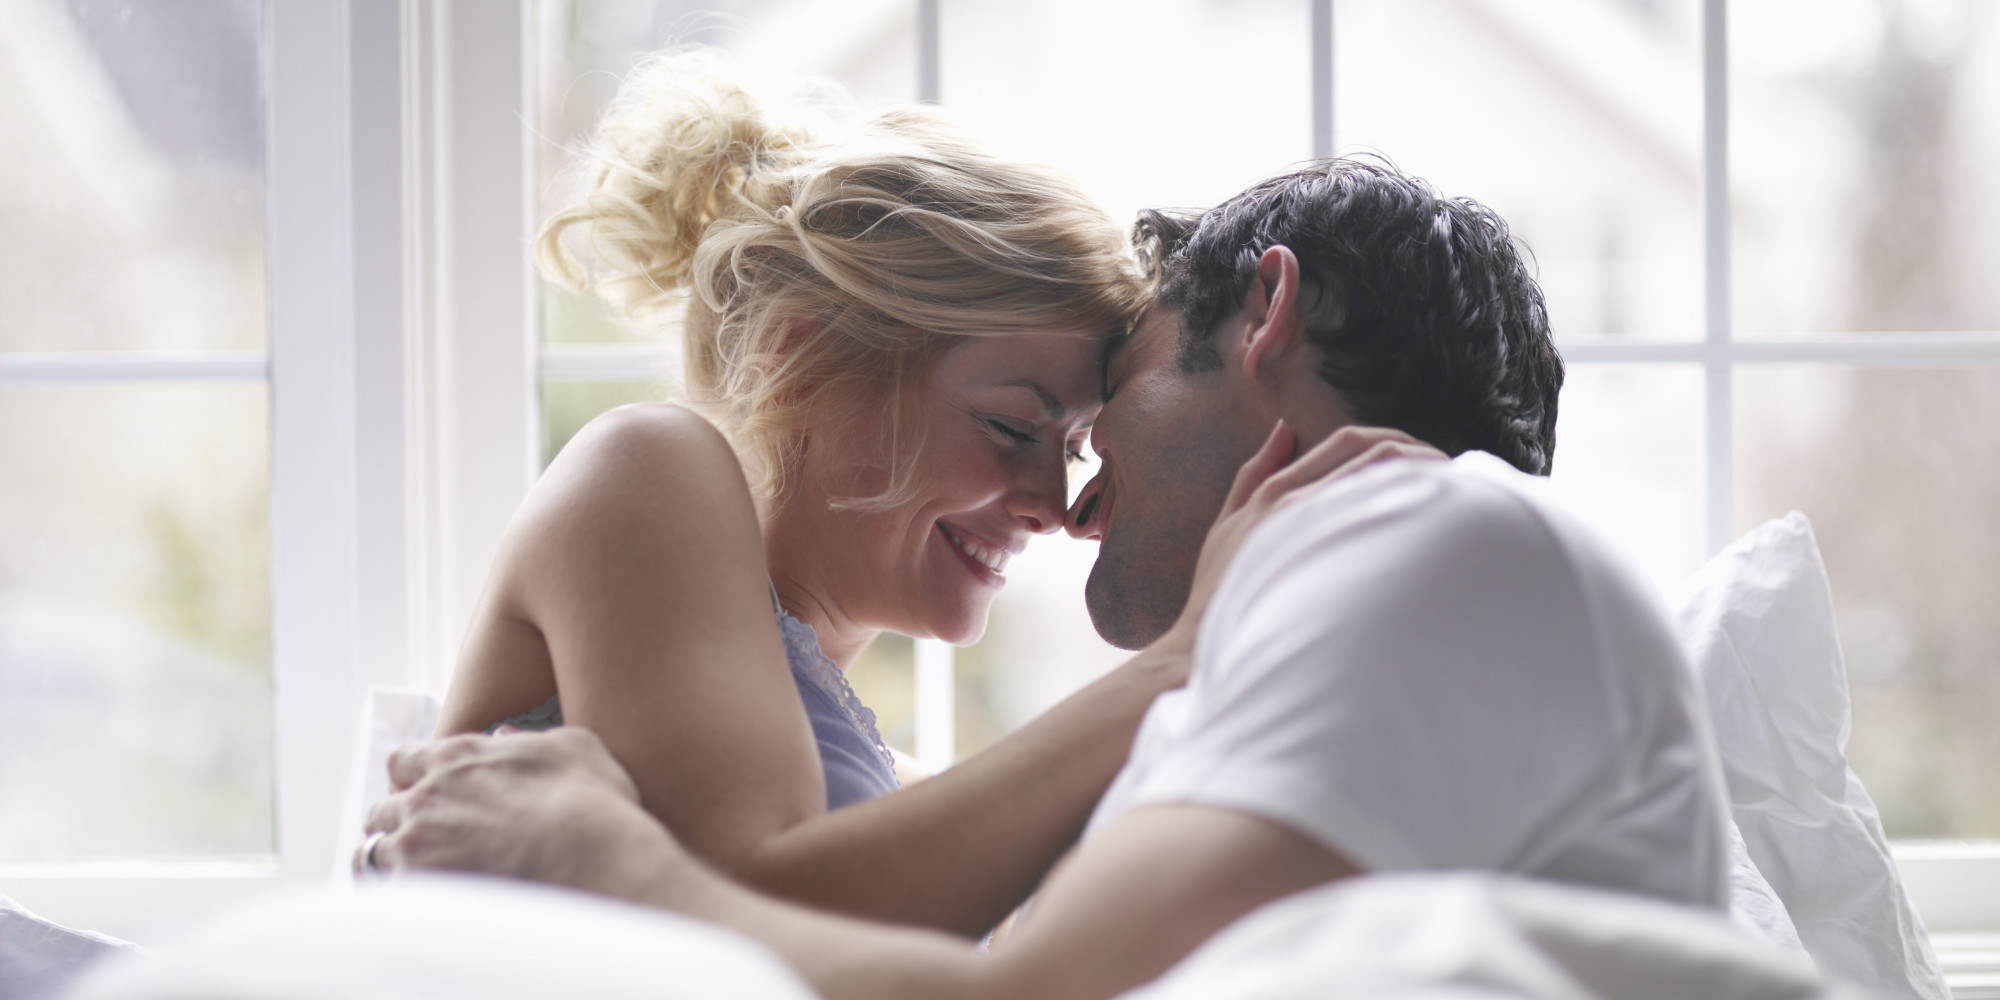 9 Morning Routine Tips To Make Your Relationship Sexier